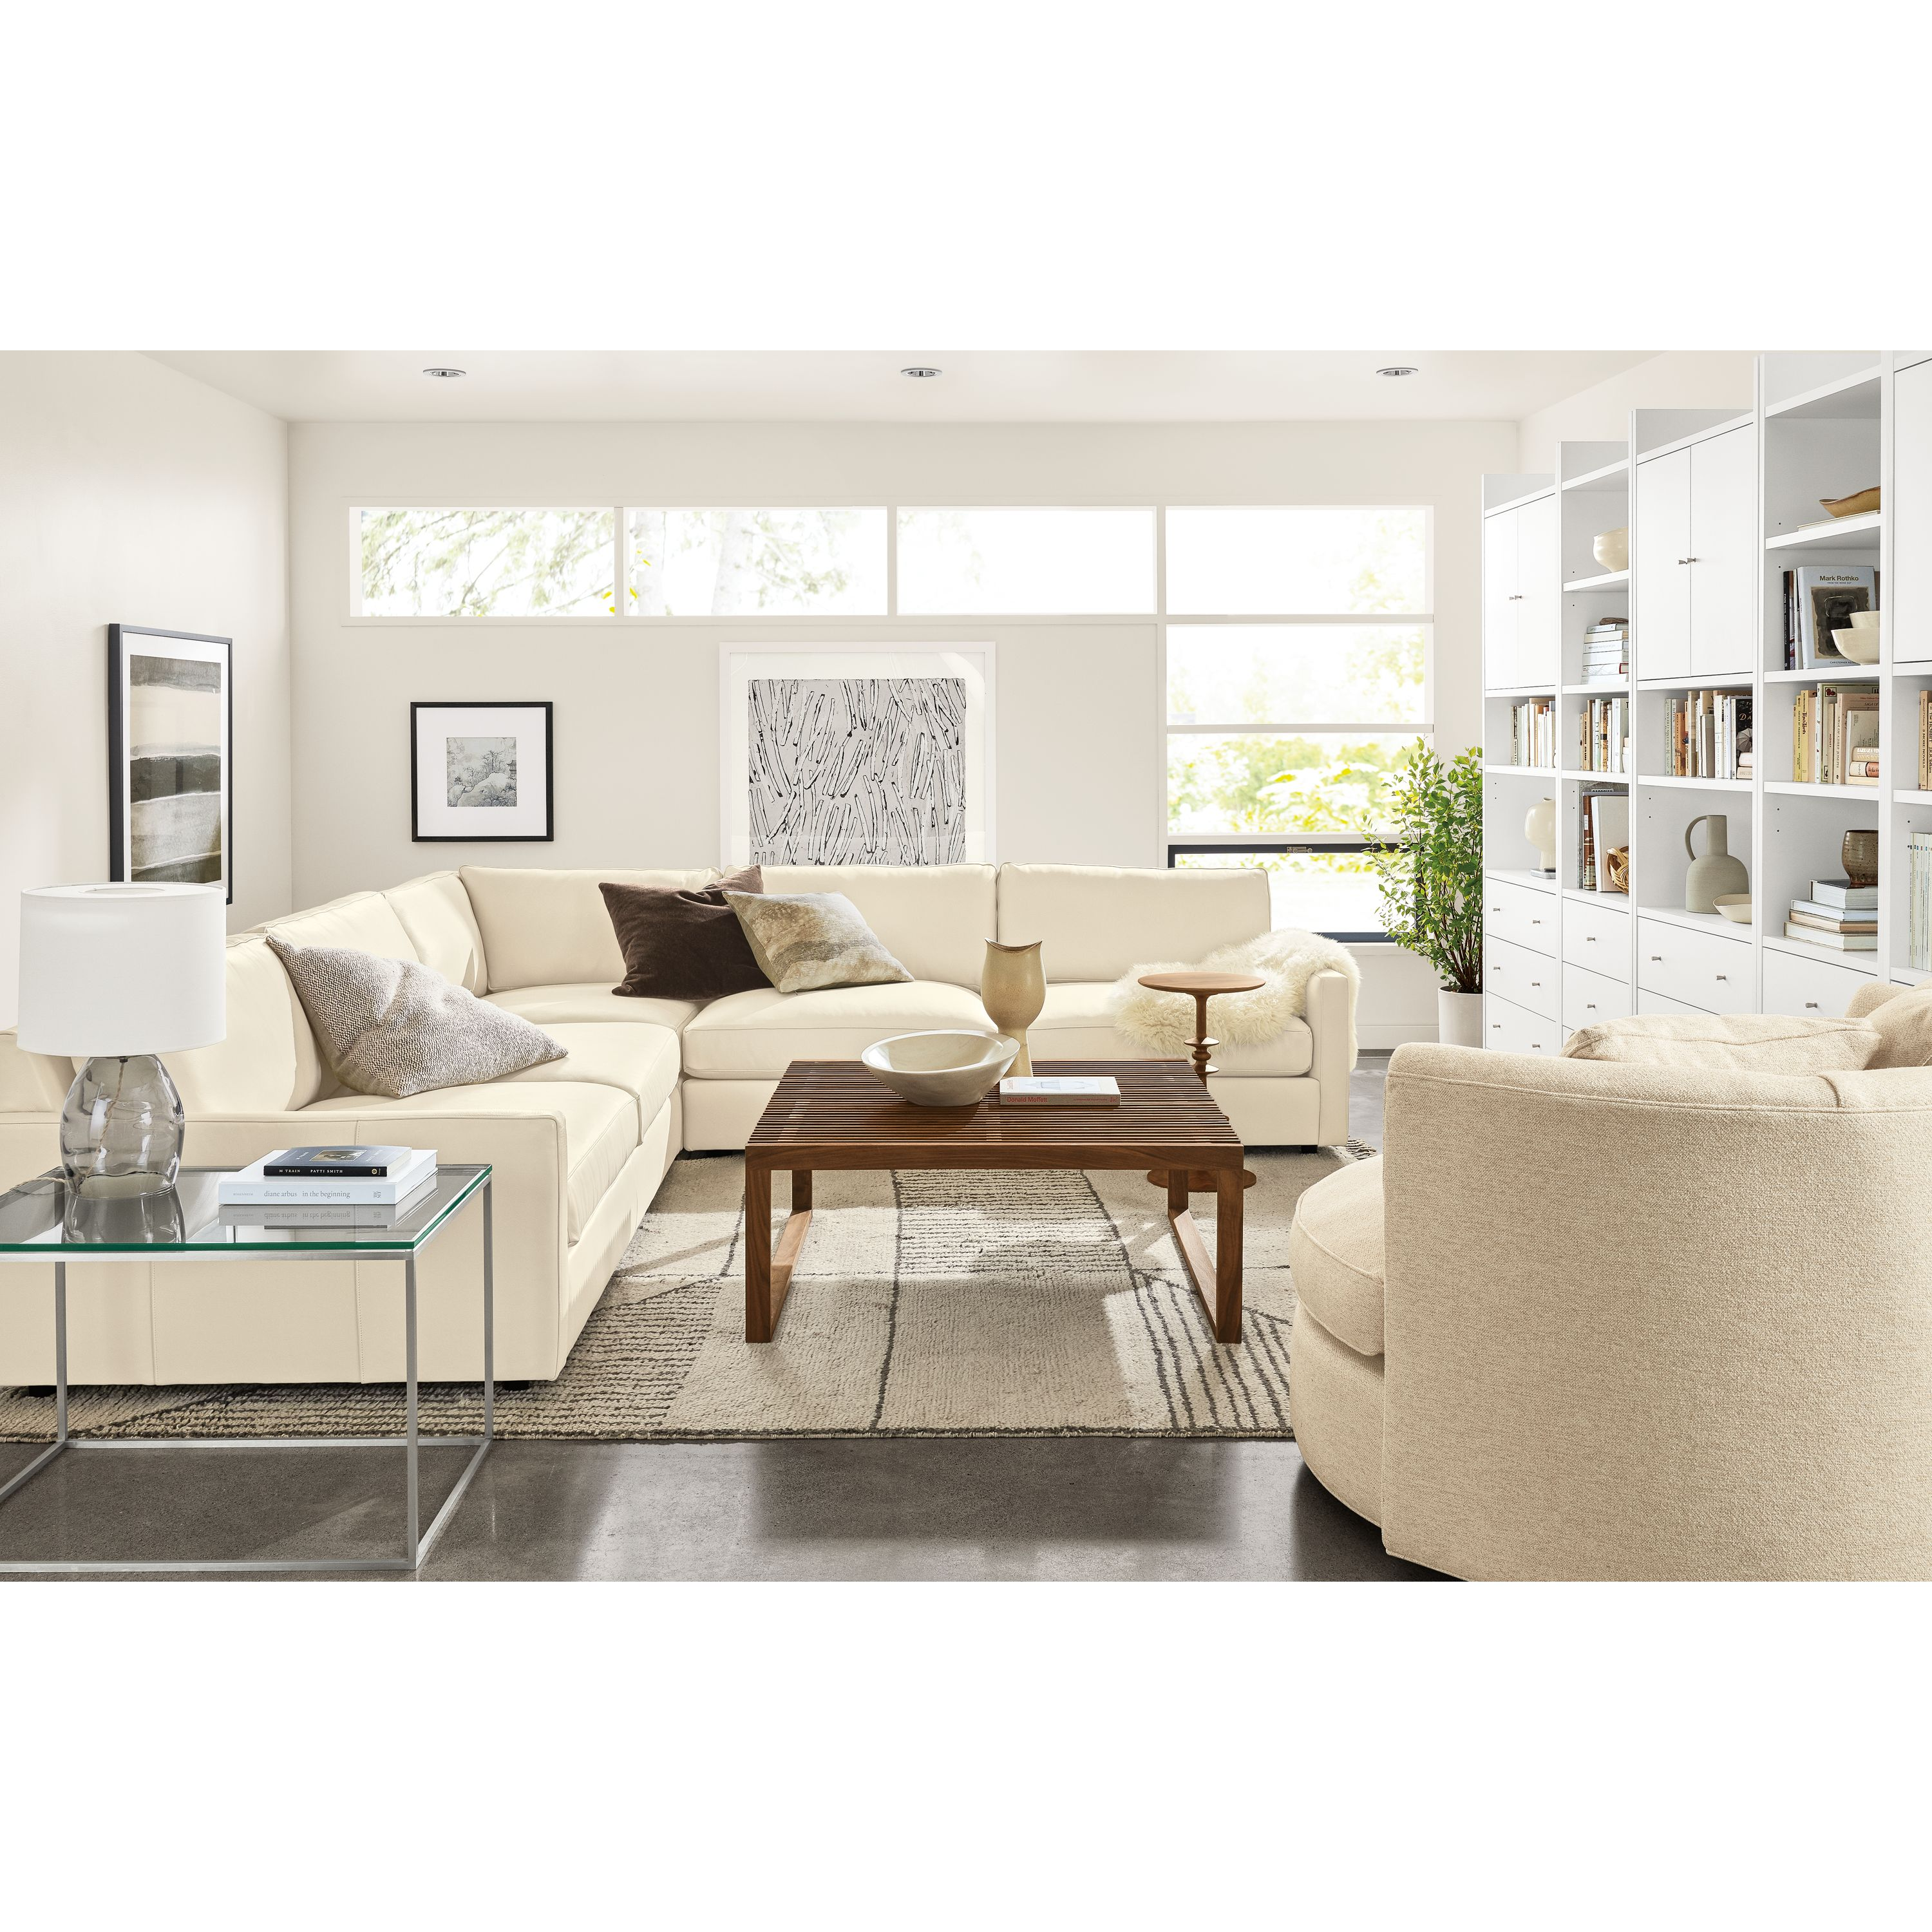 Valerie Francoise Watercolor 12 Modern Living Room Table Beige